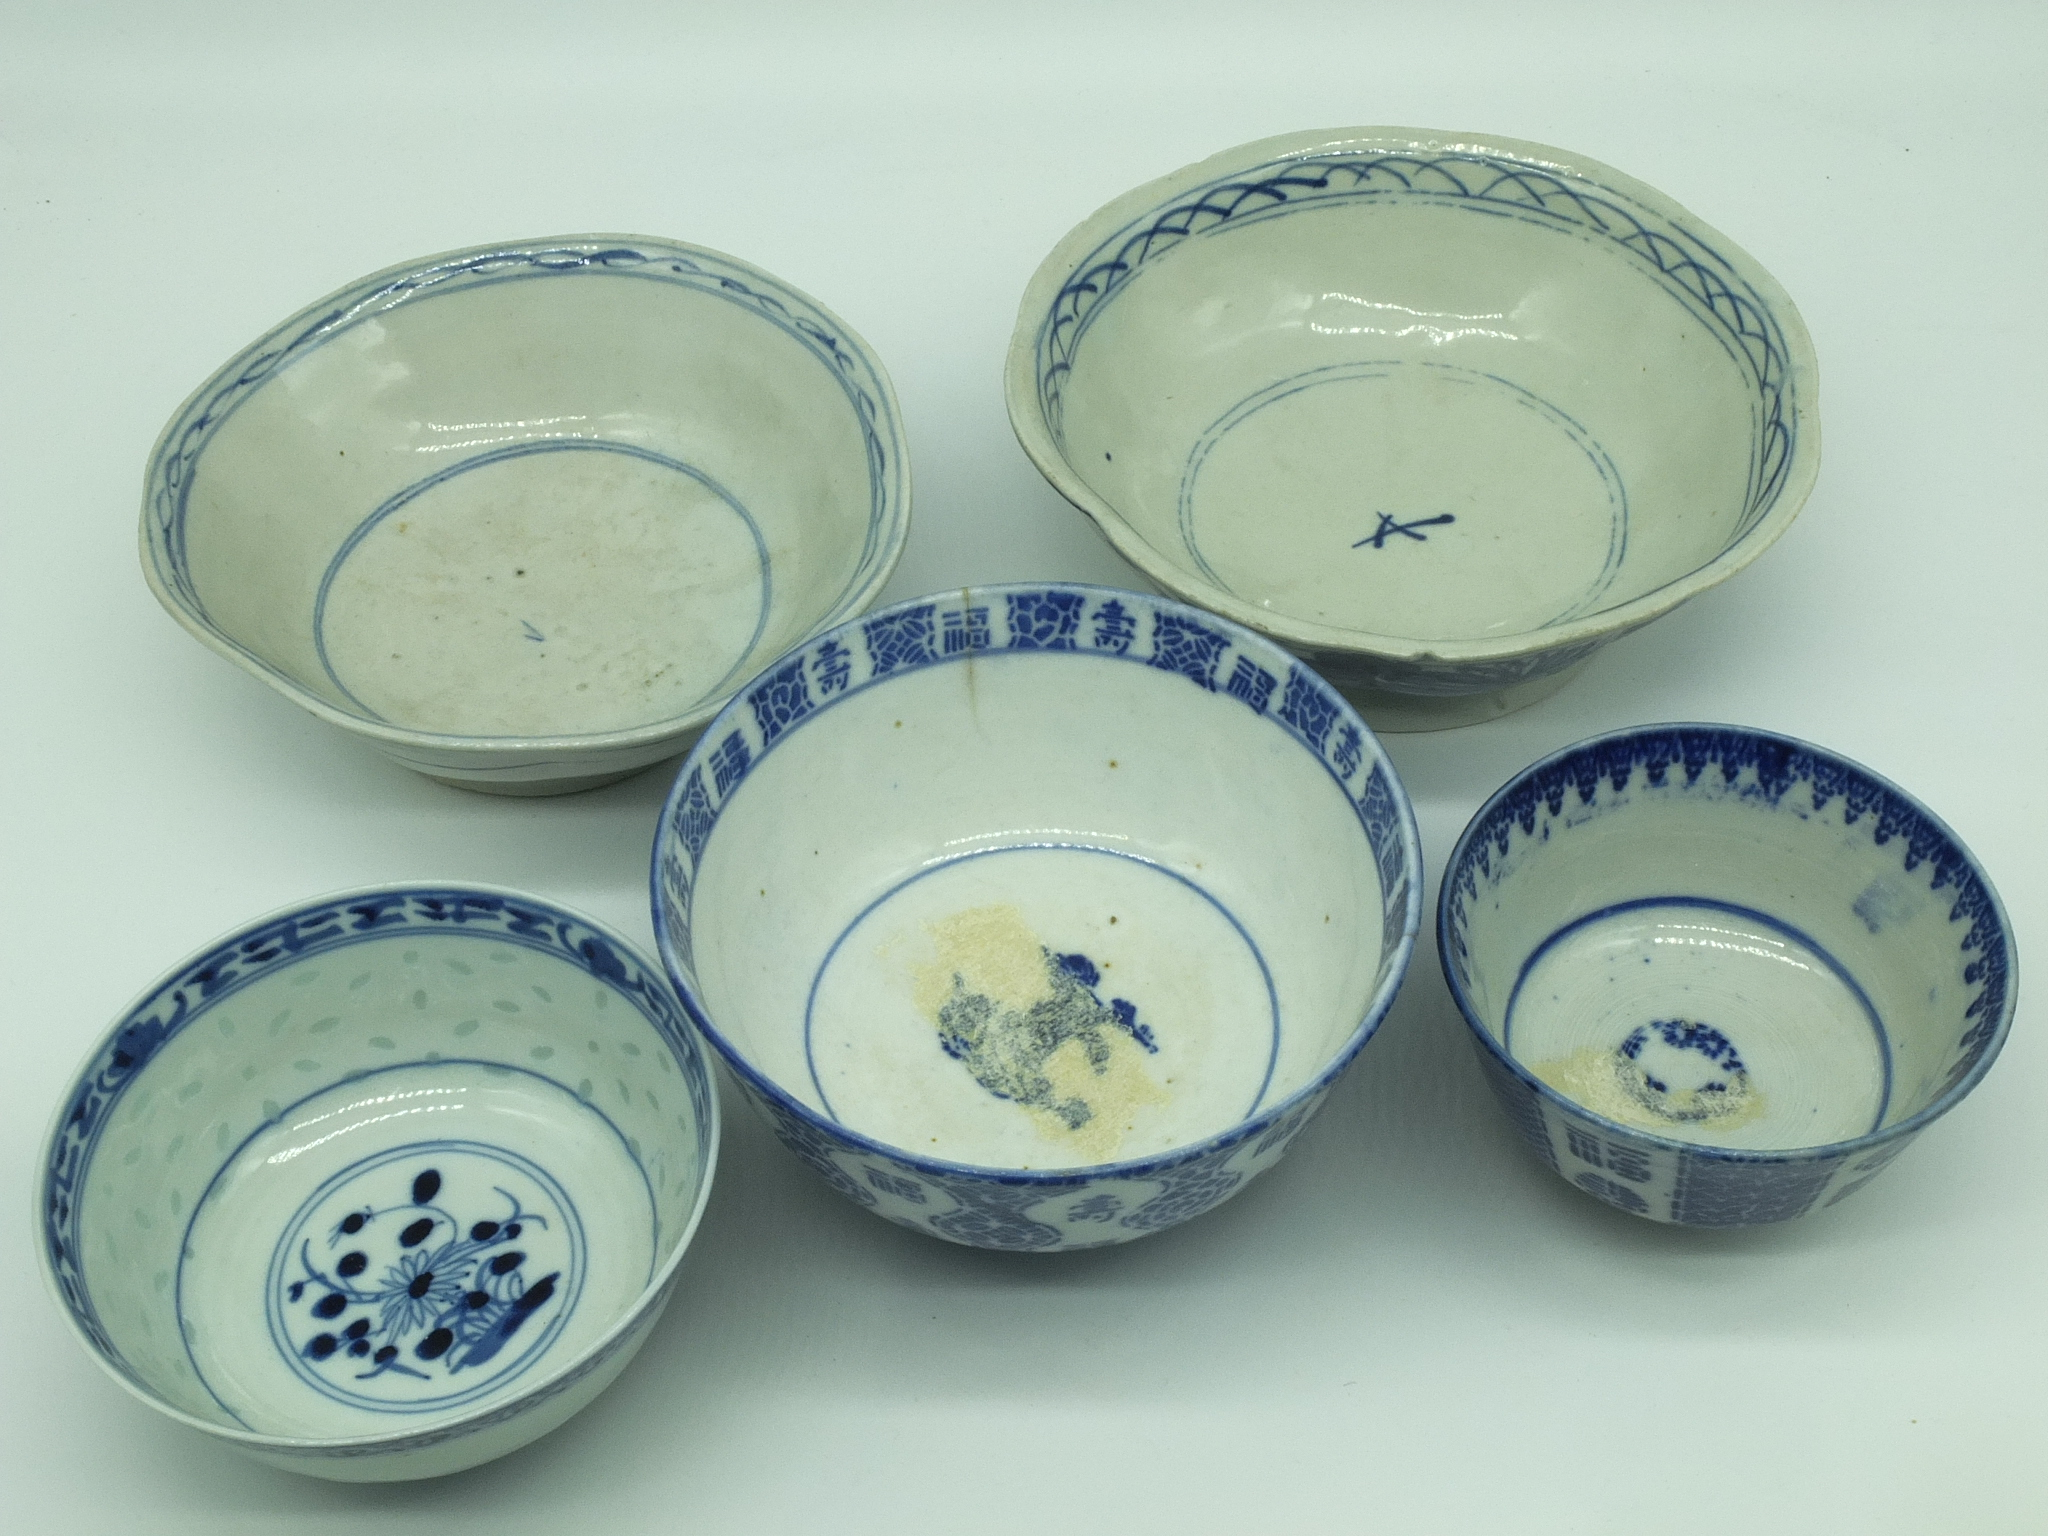 'Various Chinese Blue and White Porcelain Bowls 20th Century'